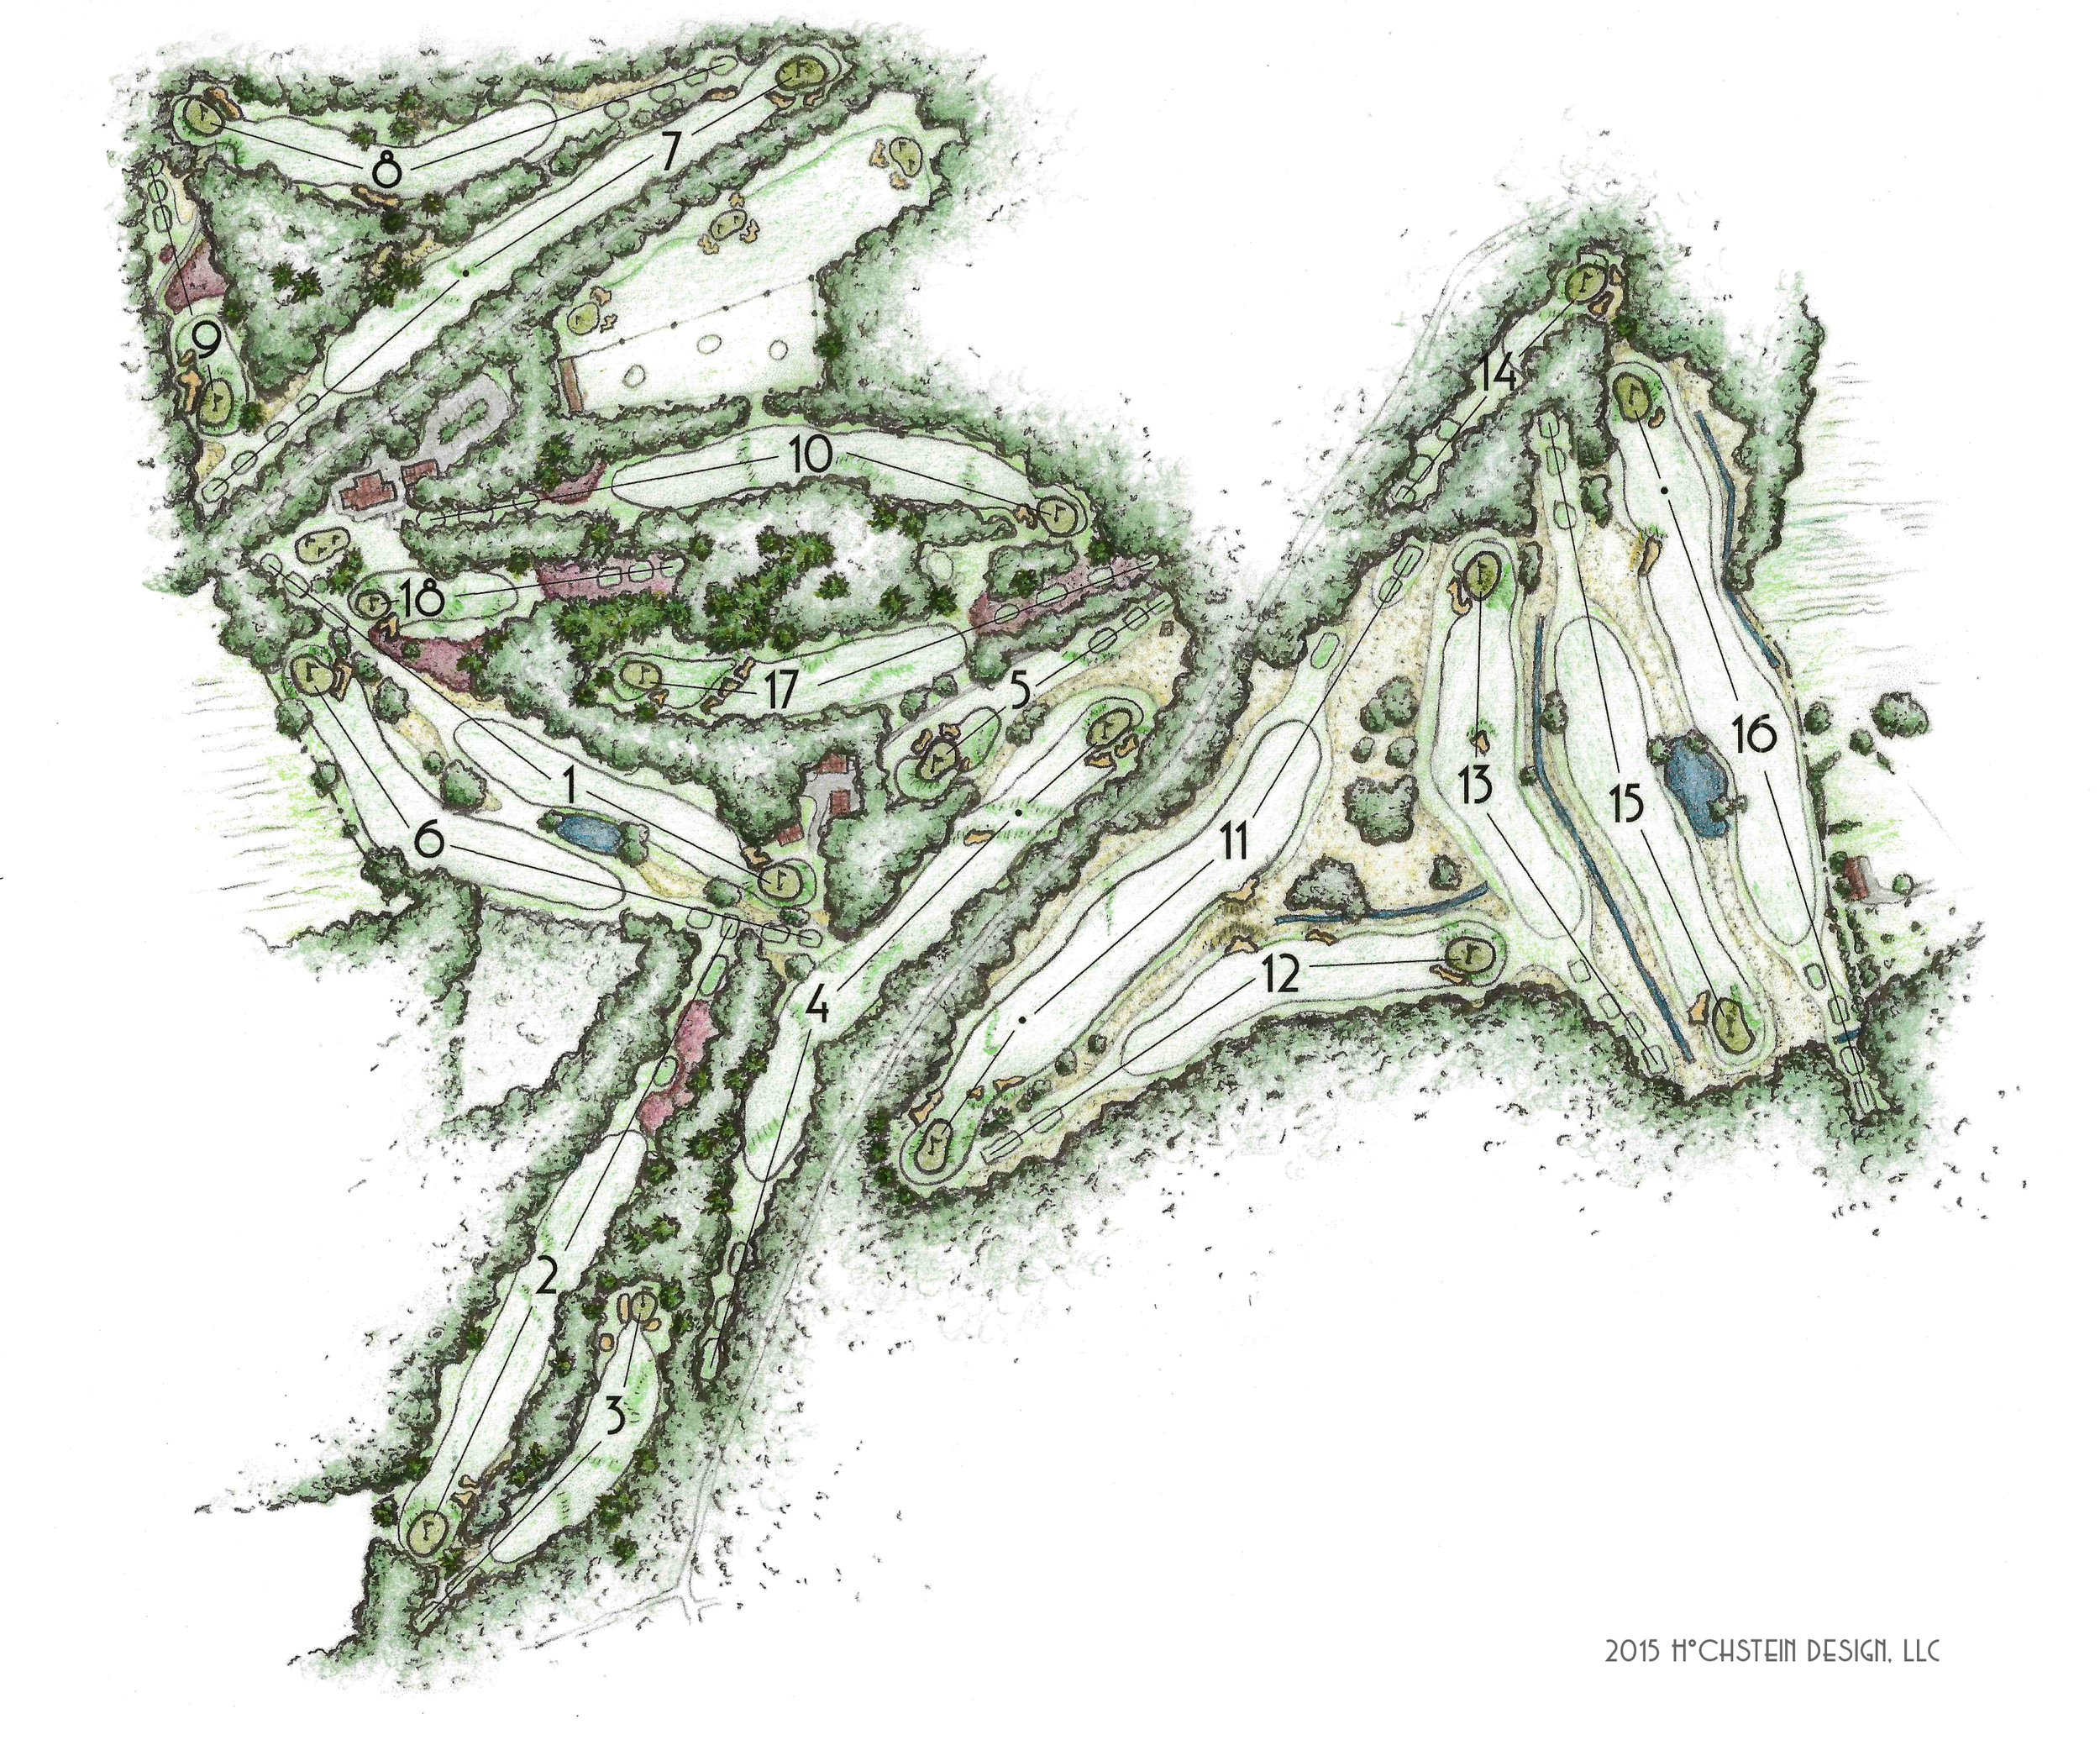 A new plan of the renovated bunkers and grasslines at Sallandsche drawn by Hochstein Design for the 2015 scorecard.